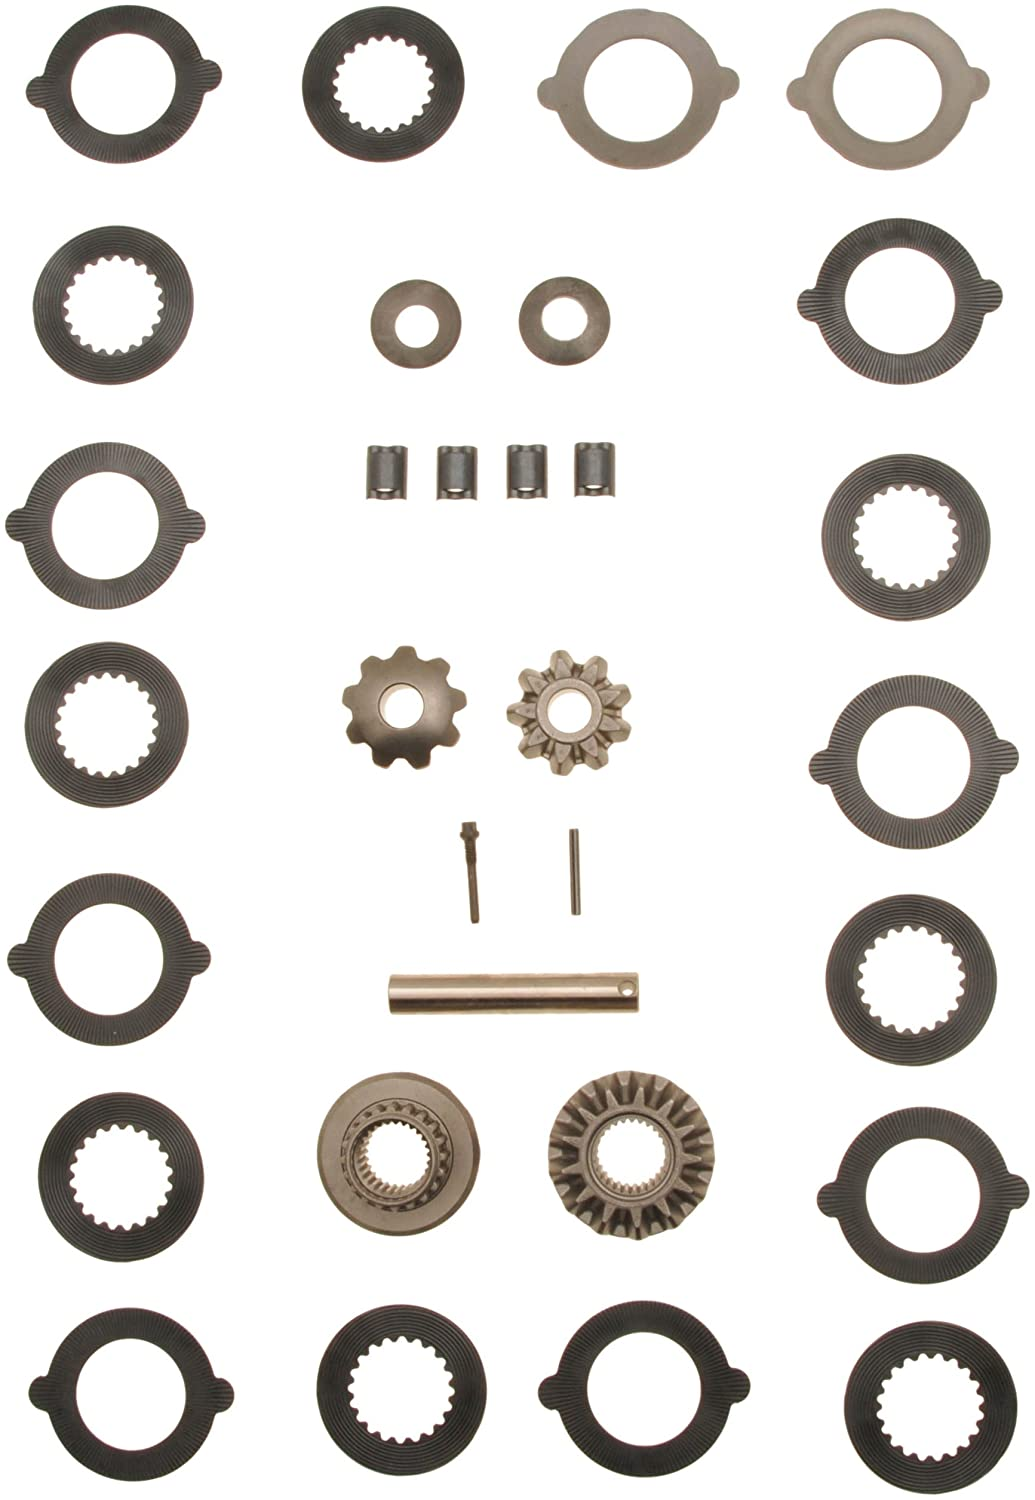 Spicer 708184 Differential Inner Gear Kit